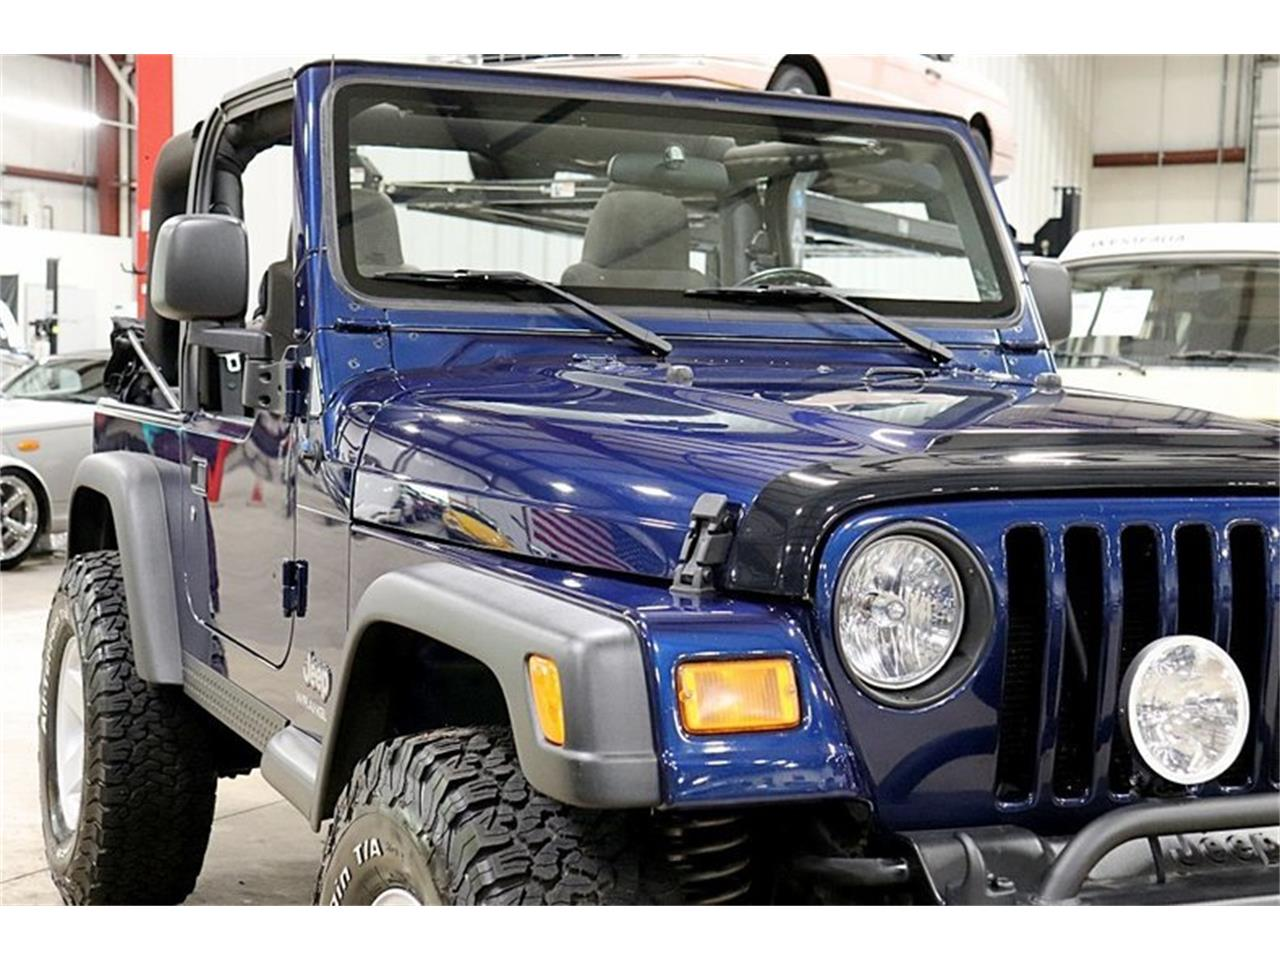 2005 Jeep Wrangler for sale in Kentwood, MI – photo 43